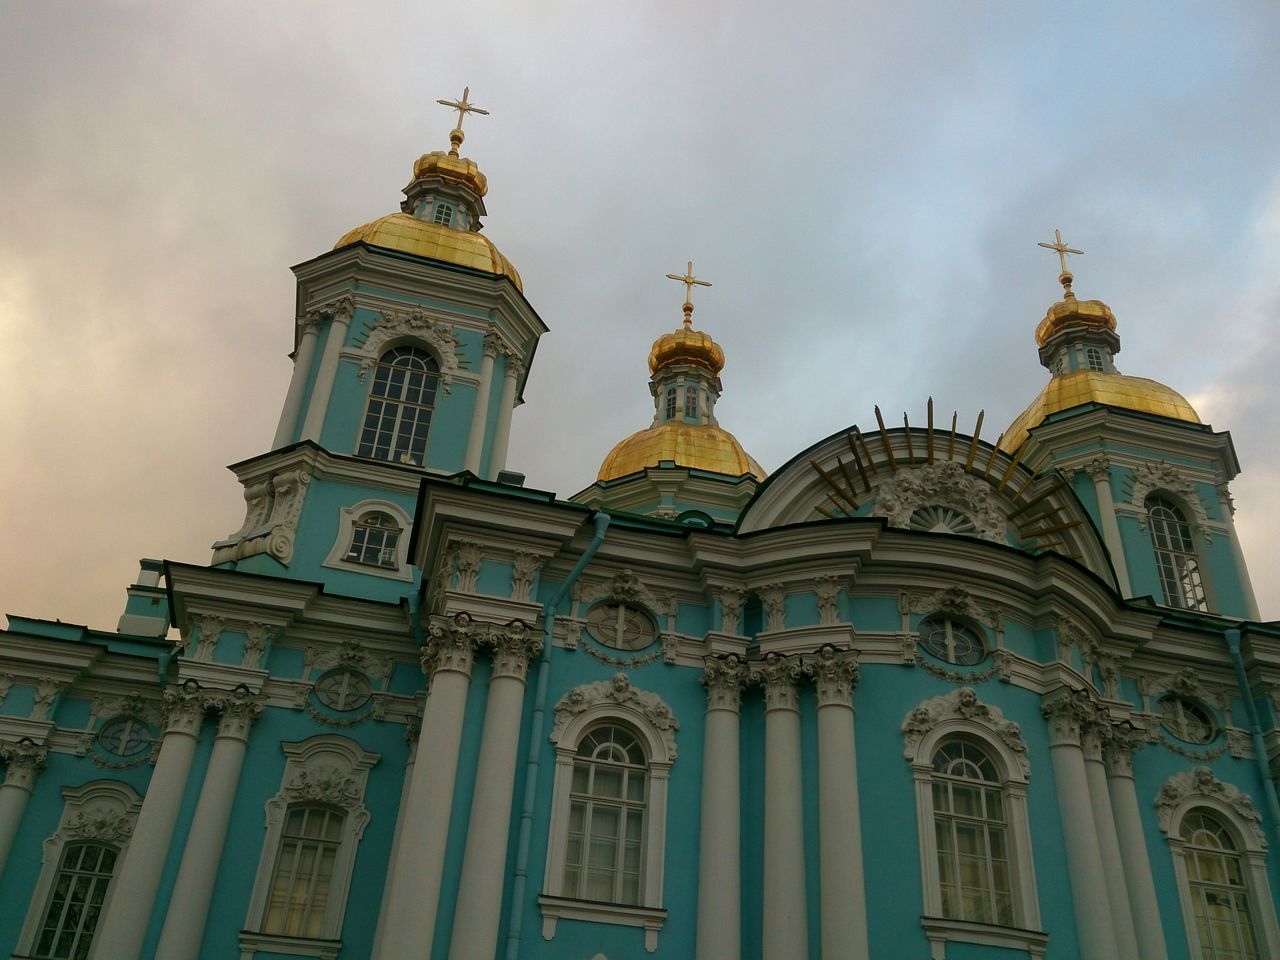 Nikolsky sobor, or the Saint Nicholas church at Saint Petersburg. Sony Xperia Zr Mobile Photography Mobilephotography No People Church Churches Architecture Architectural Detail Religious Architecture Historical Building Historical Place Historic Building Low Angle View